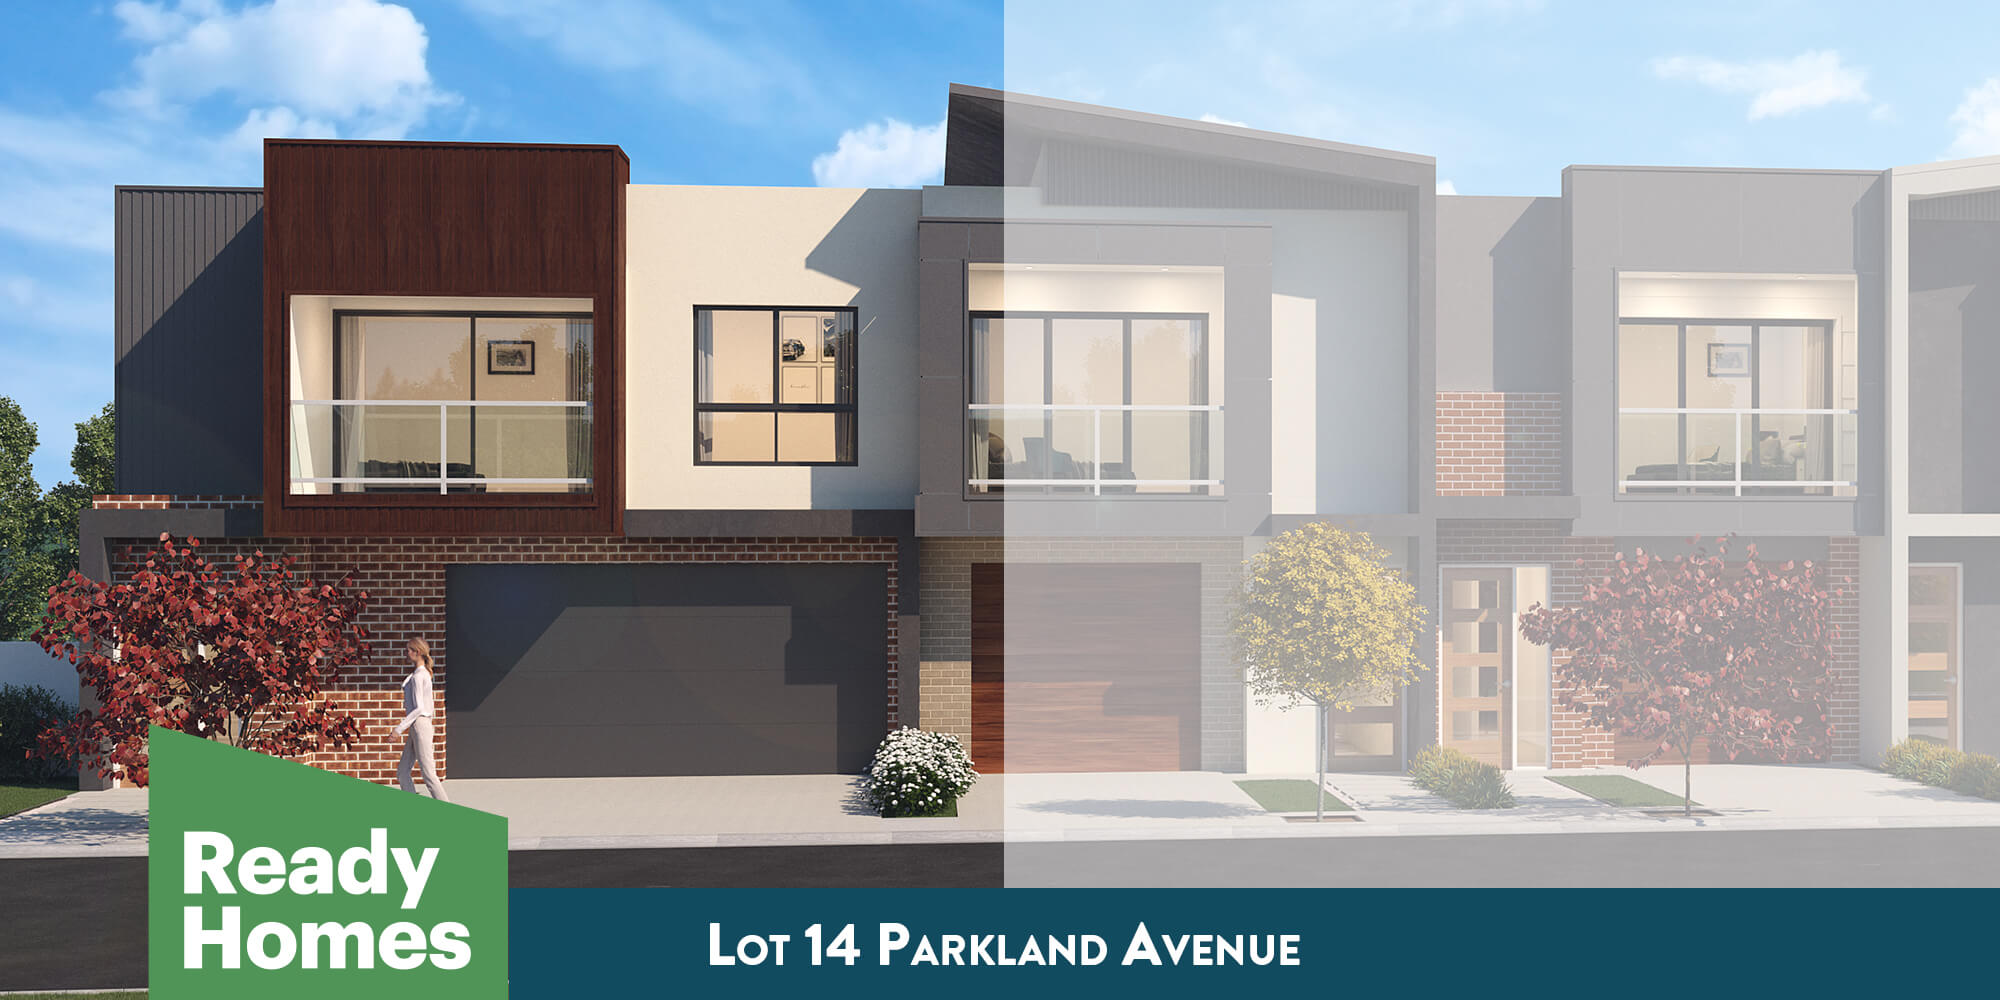 Lot 14 Parkland Avenue facade